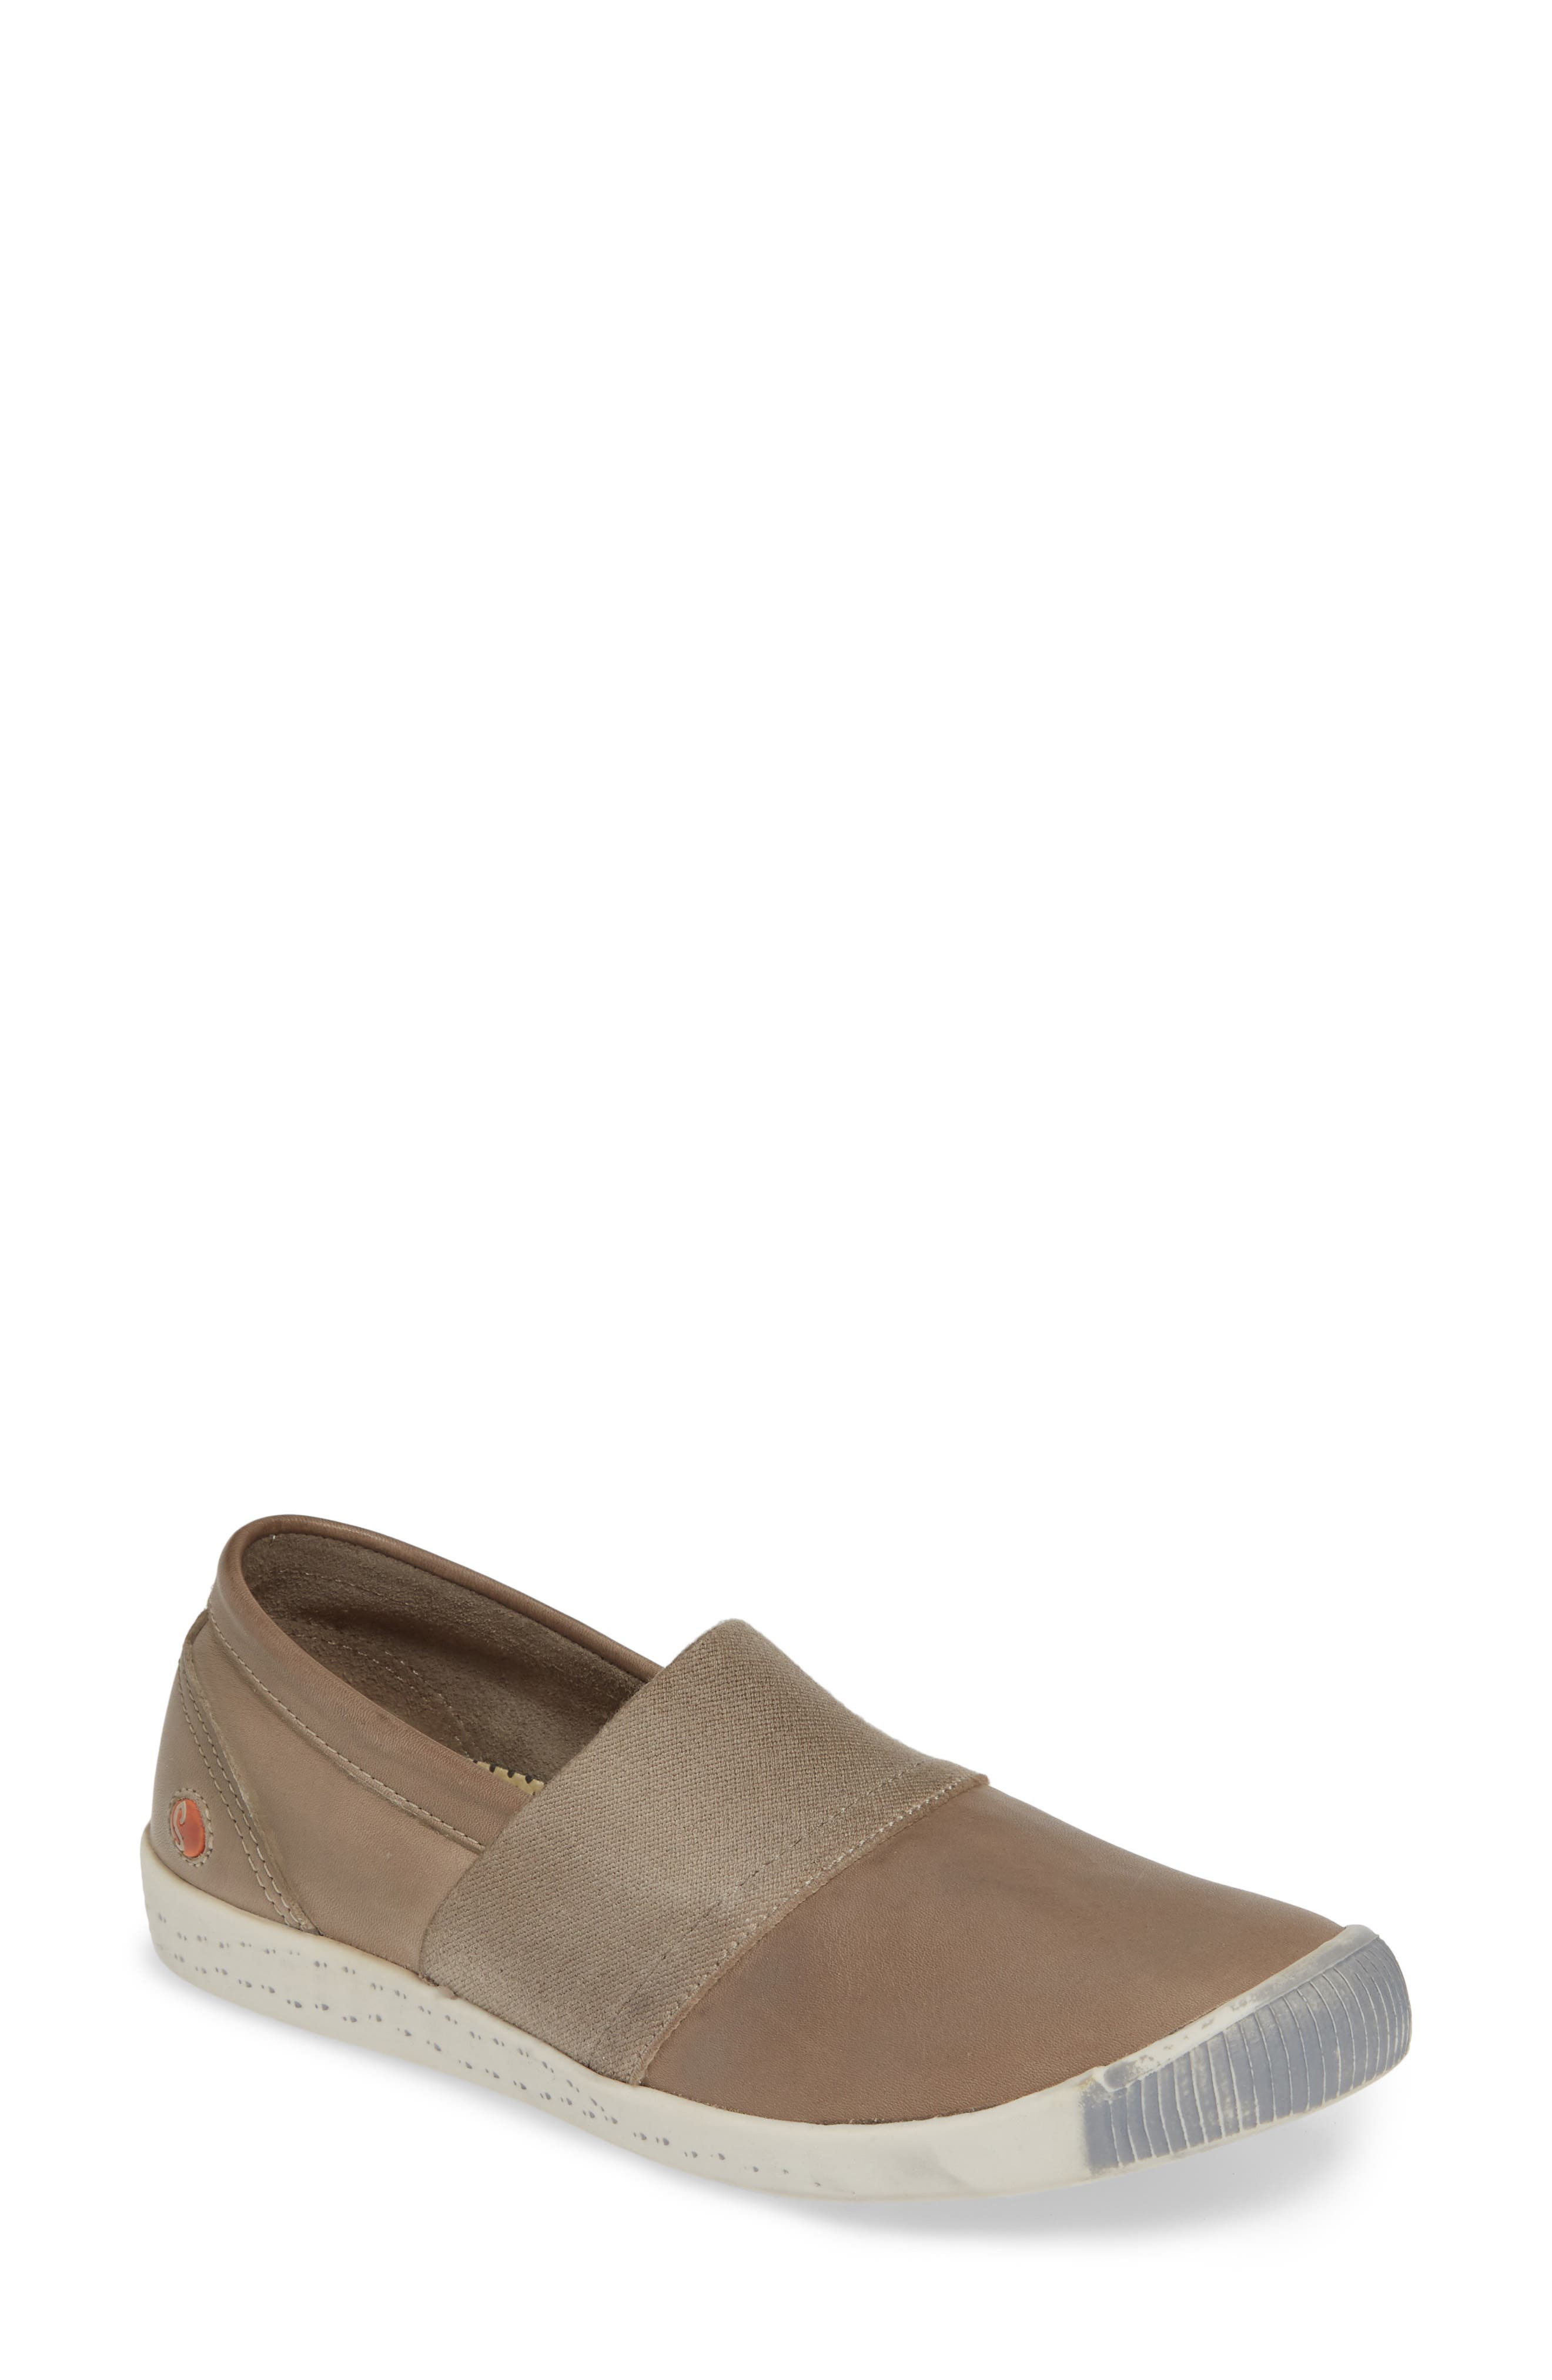 Women's Softinos by Fly London Shoes